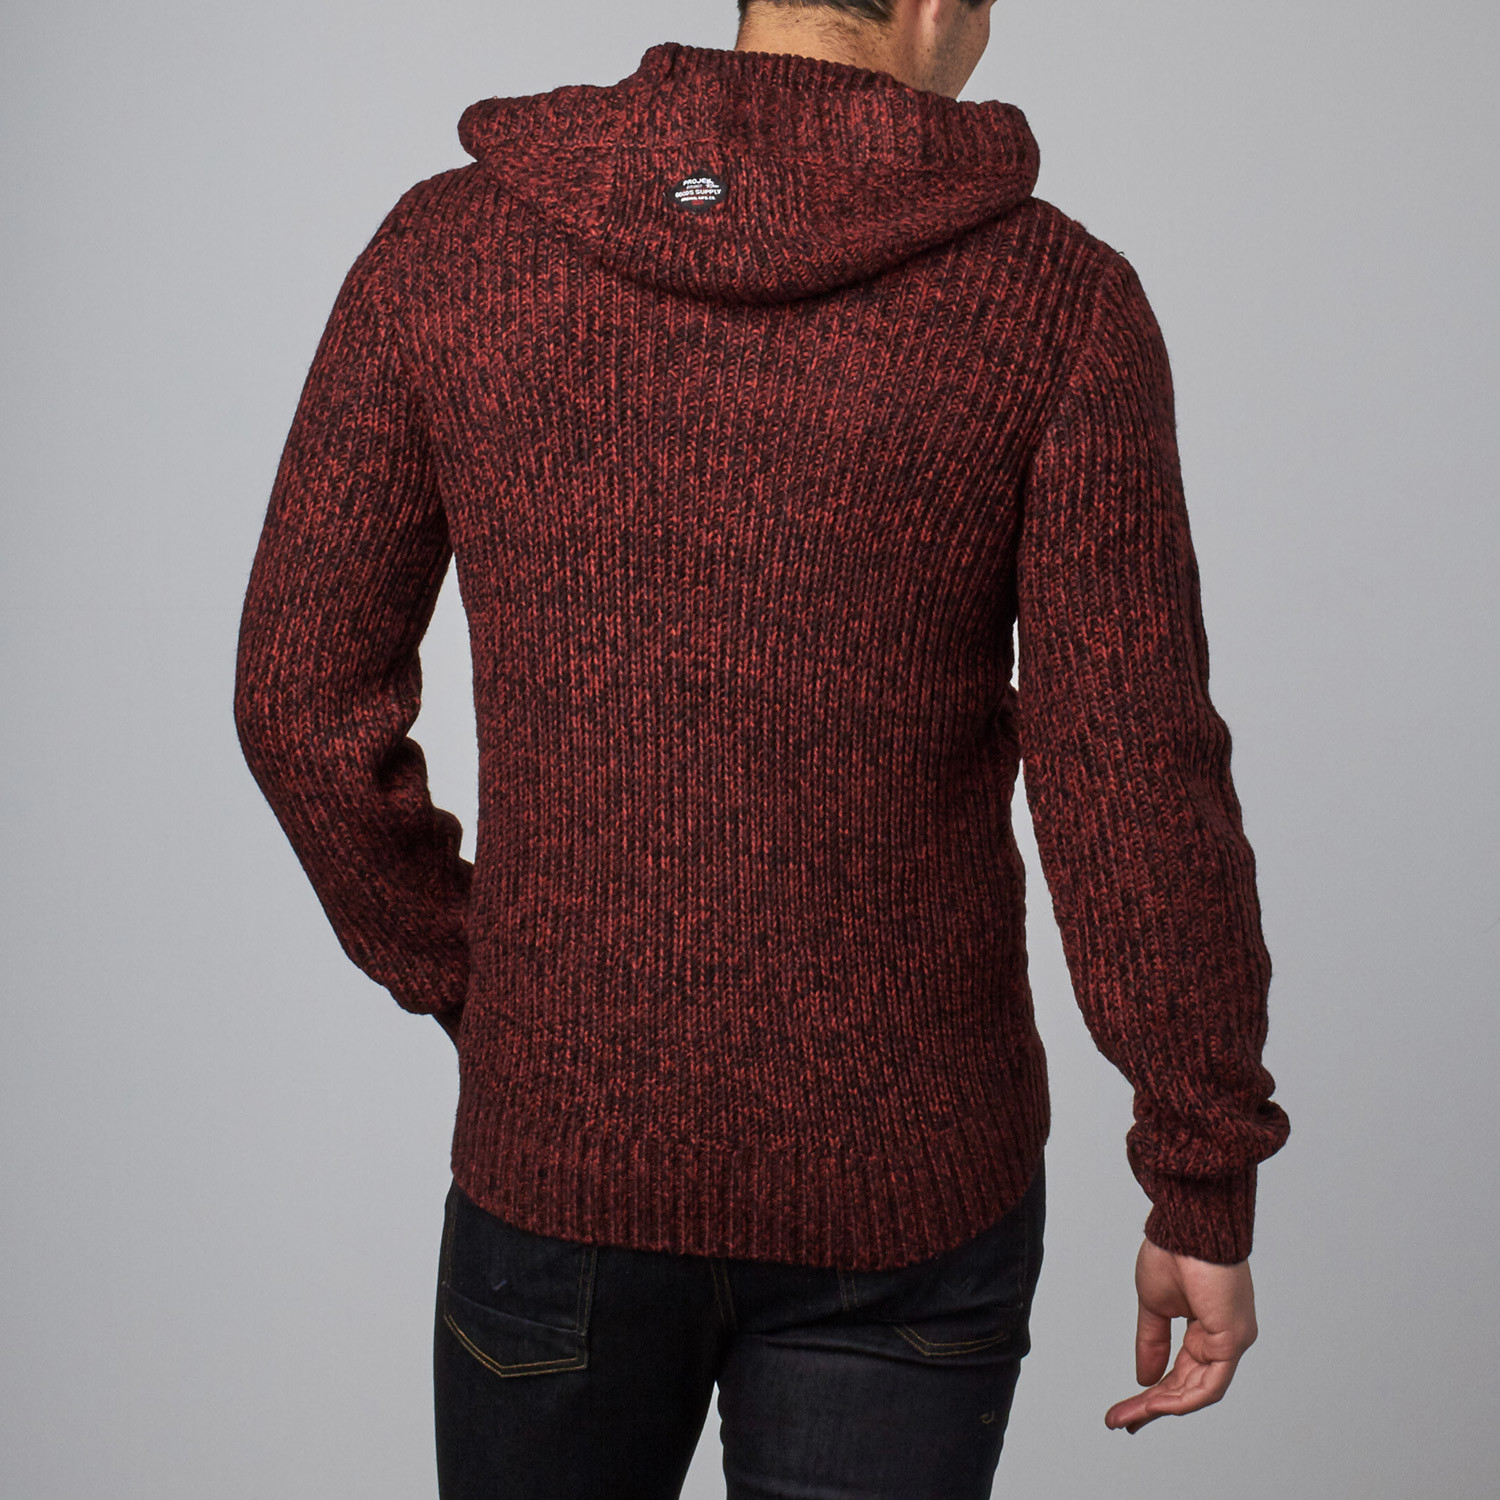 Cable Knit Sweater Hoodie // Burgundy (S) - Projek Raw - Touch of ...